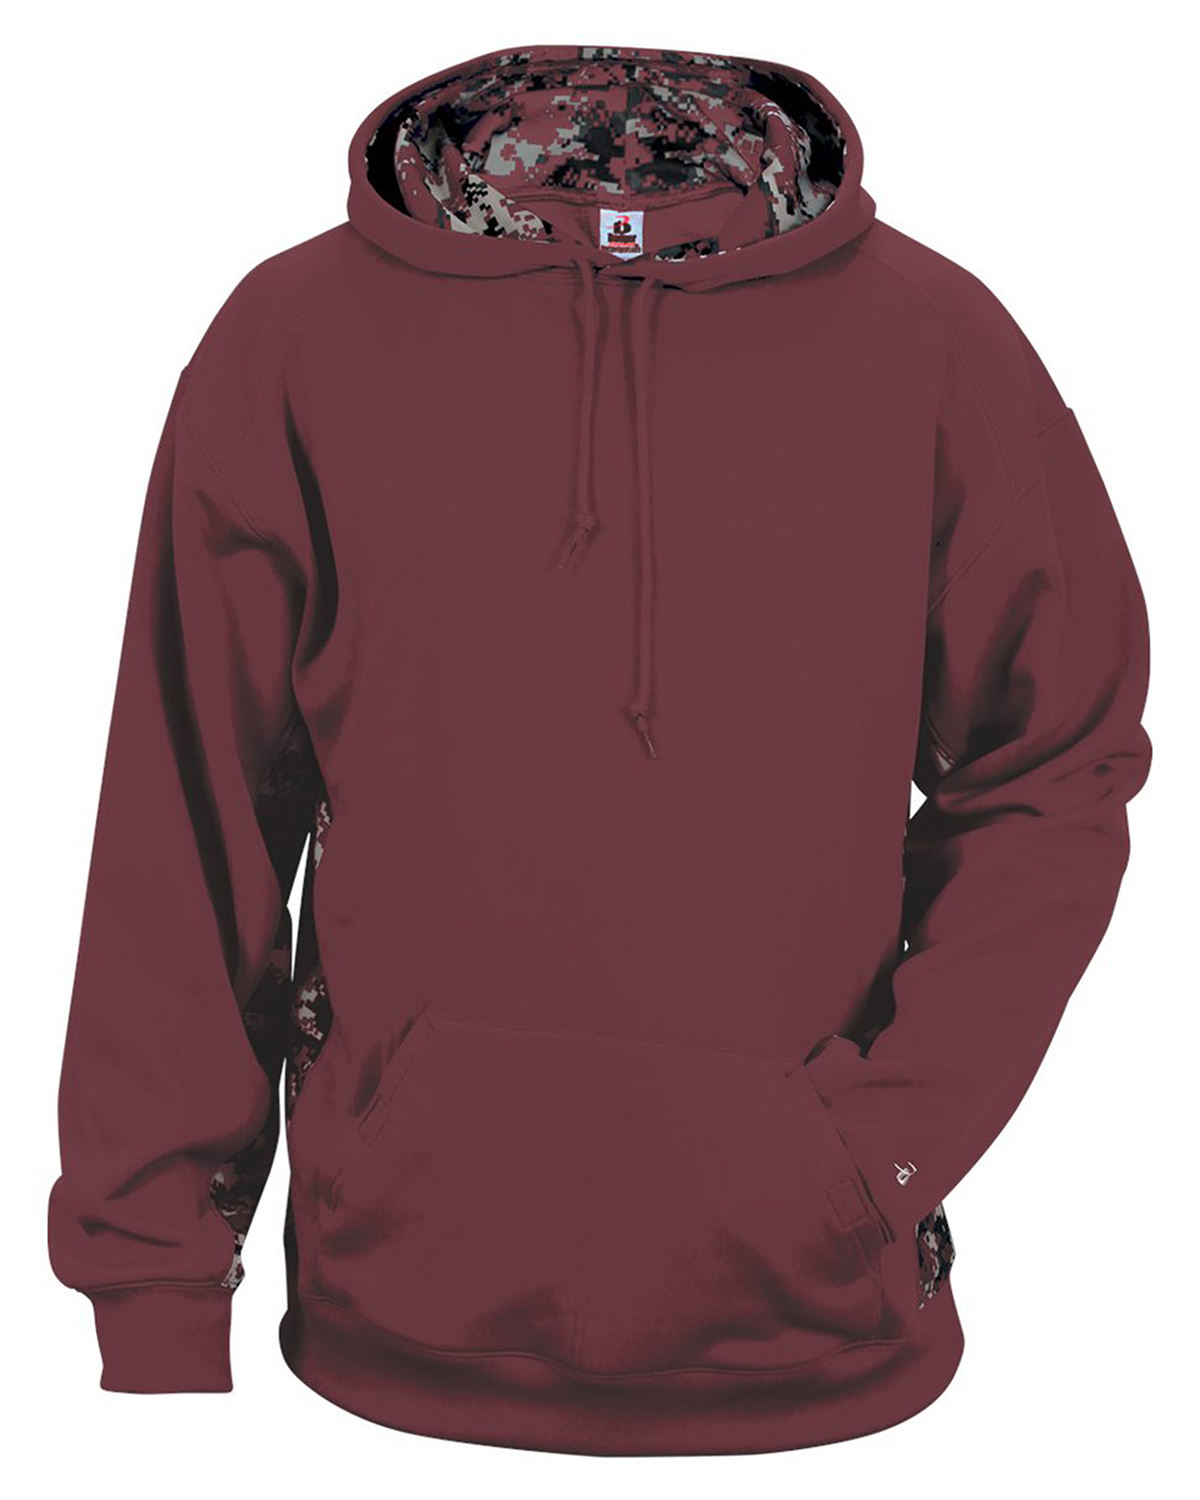 click to view MAROON/ MARN DIG